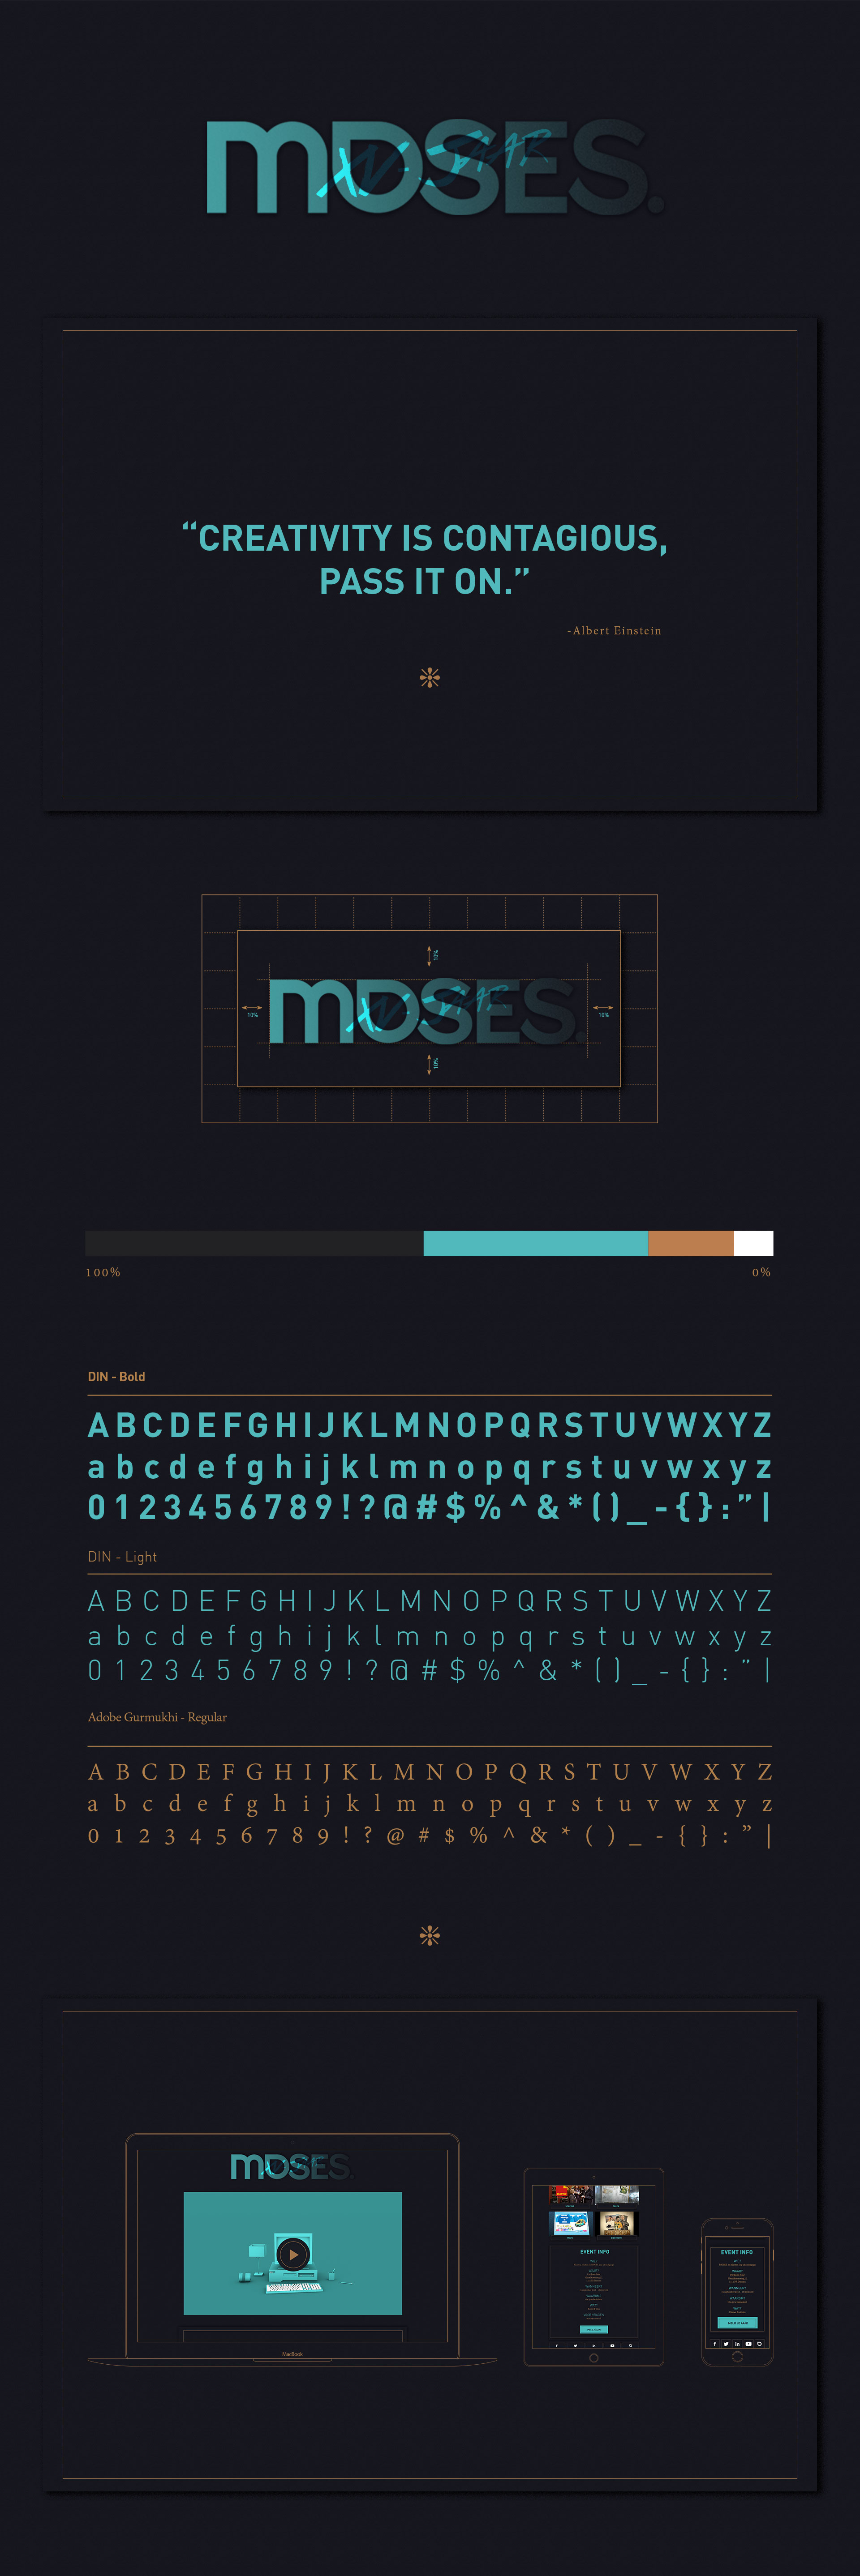 XV-Jaar MOSES project case